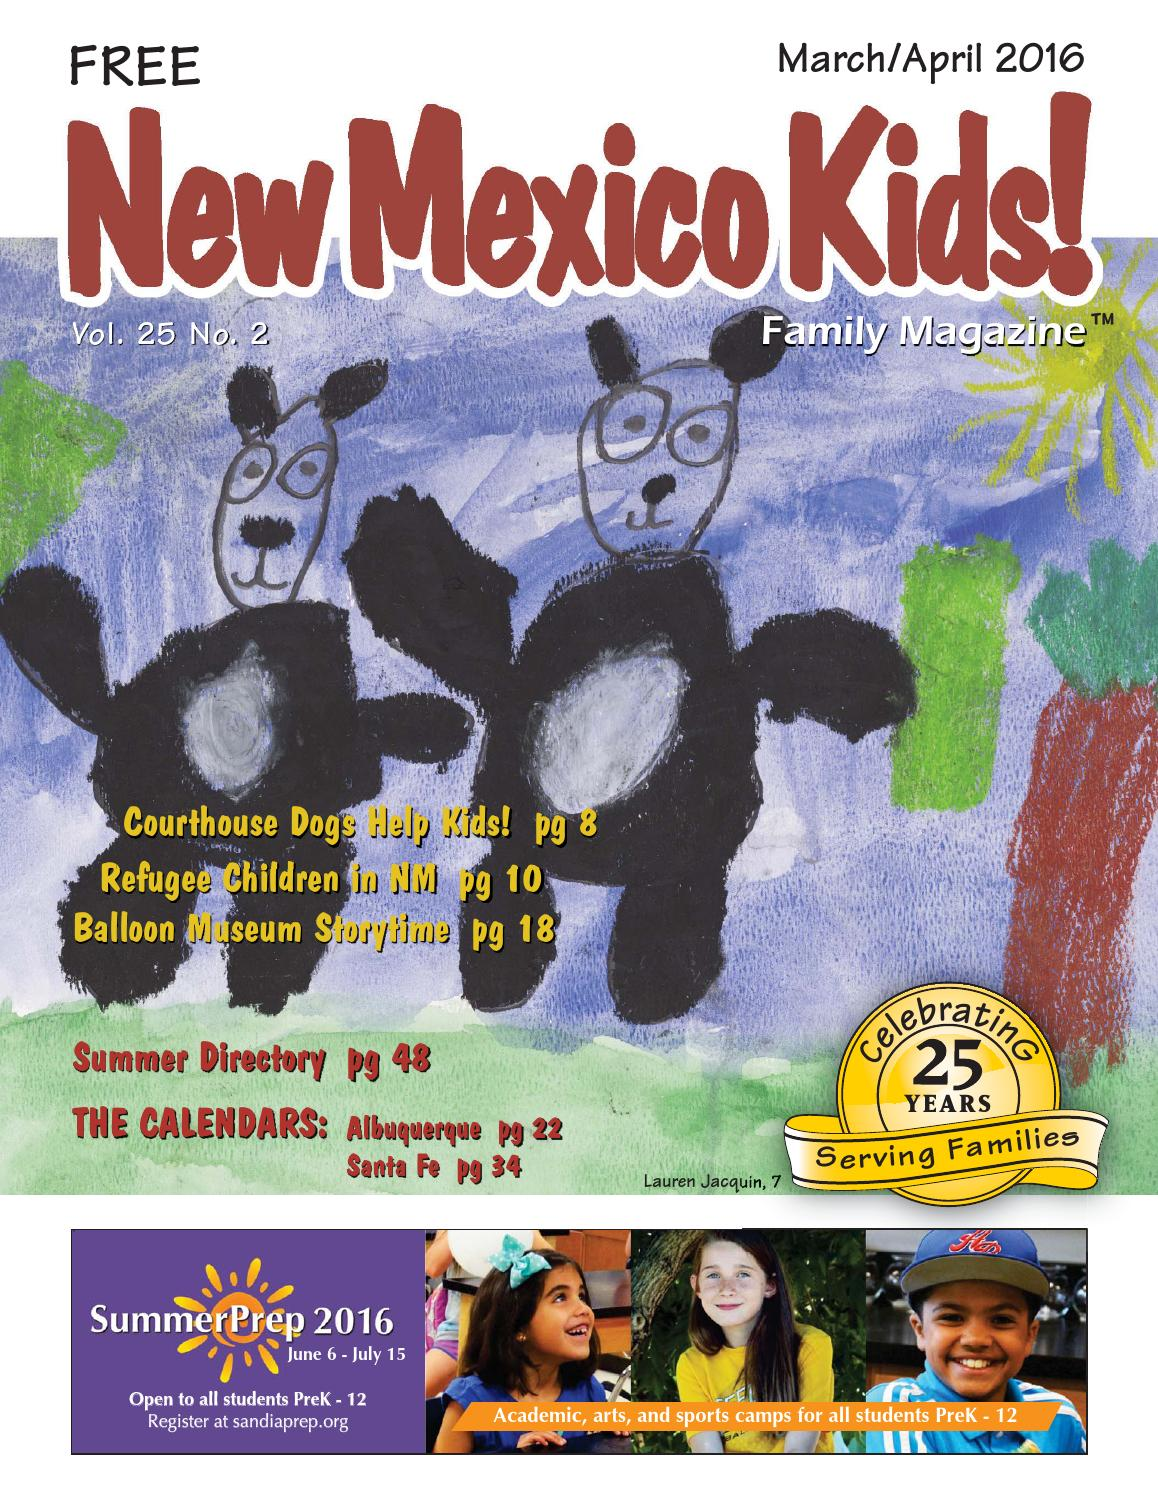 New Mexico Kids! March/April 2016 by New Mexico Kids! - issuu